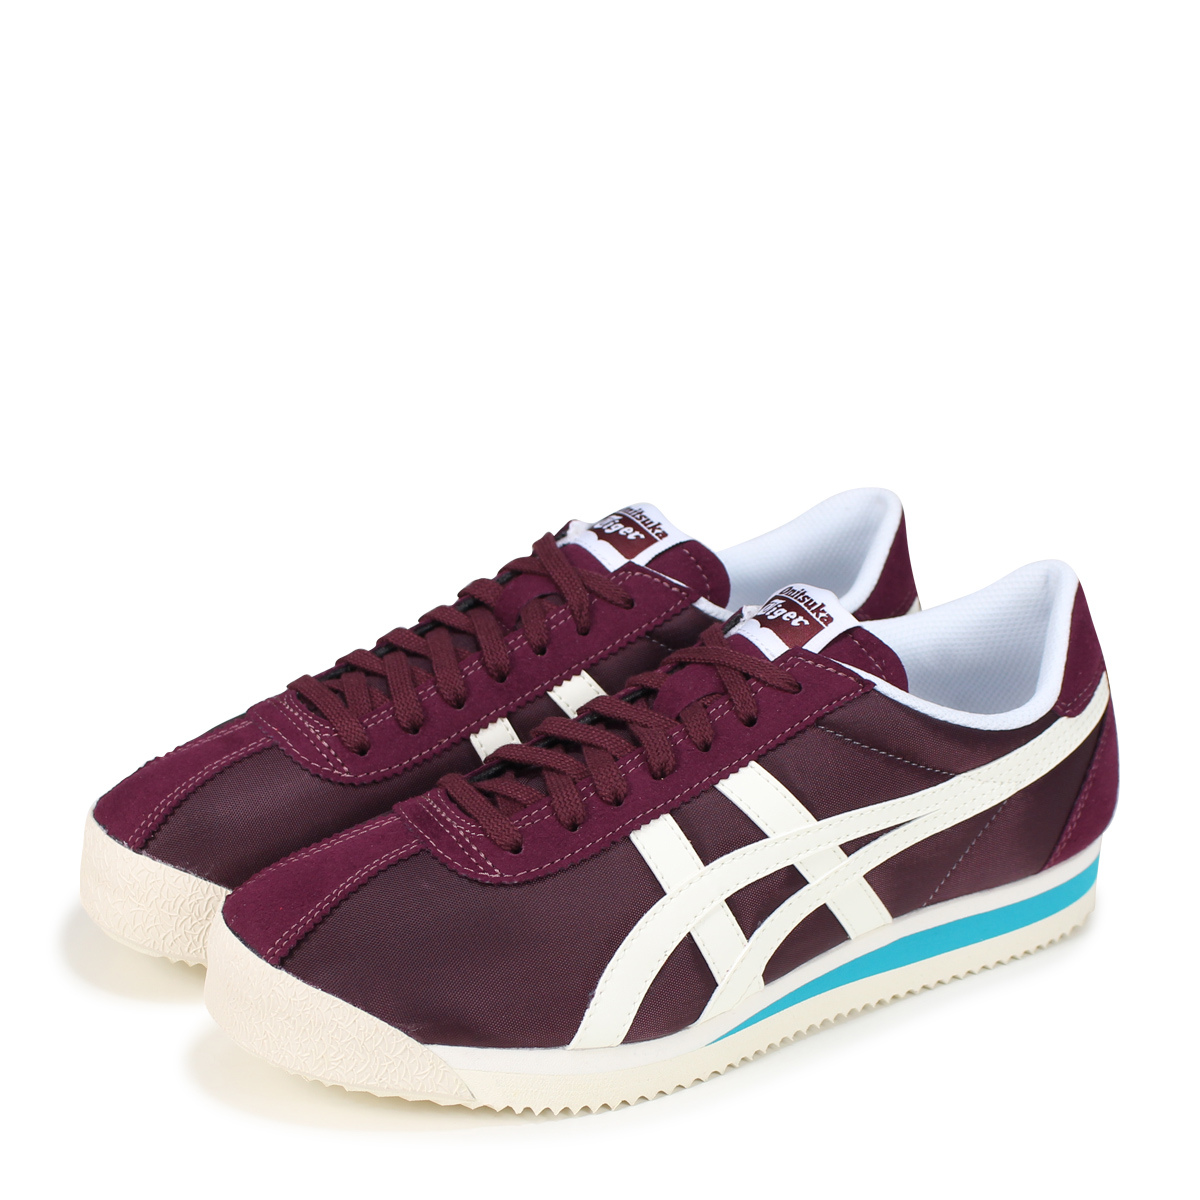 reputable site ca2ae 7aca3 Onitsuka Tiger TIGER CORSAIR Onitsuka tiger tiger Corsair men gap Dis  sneakers D747N-600 wine red [load planned Shinnyu load in reservation  product ...